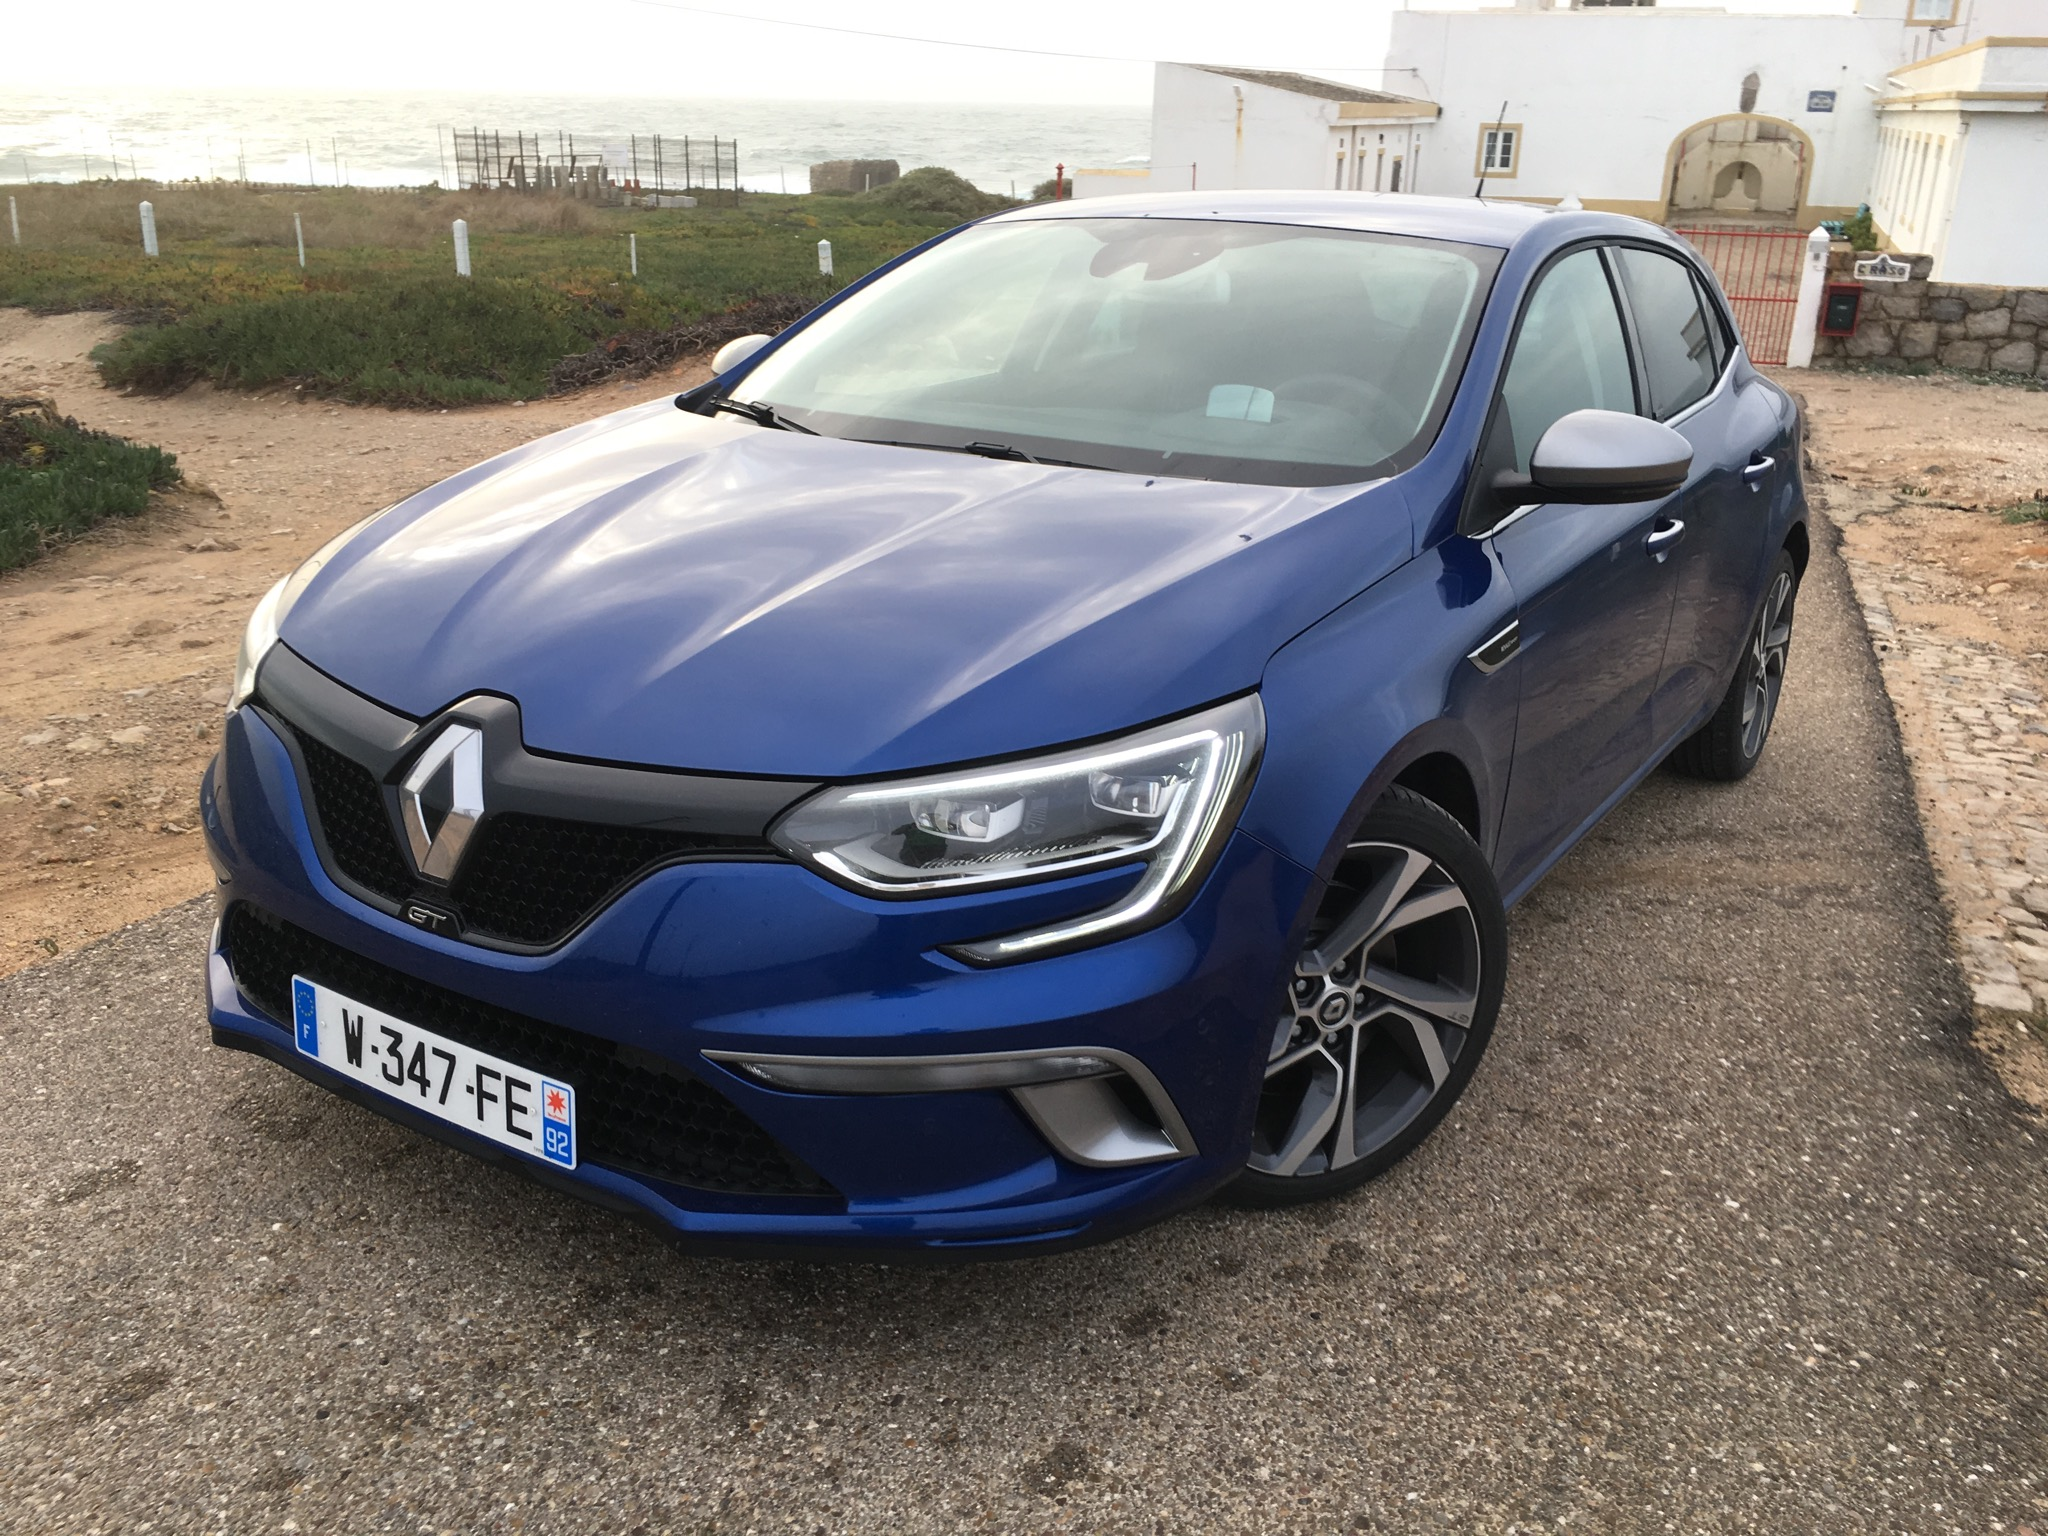 2016 Renault Megane Gt Hatchback (View 23 of 27)